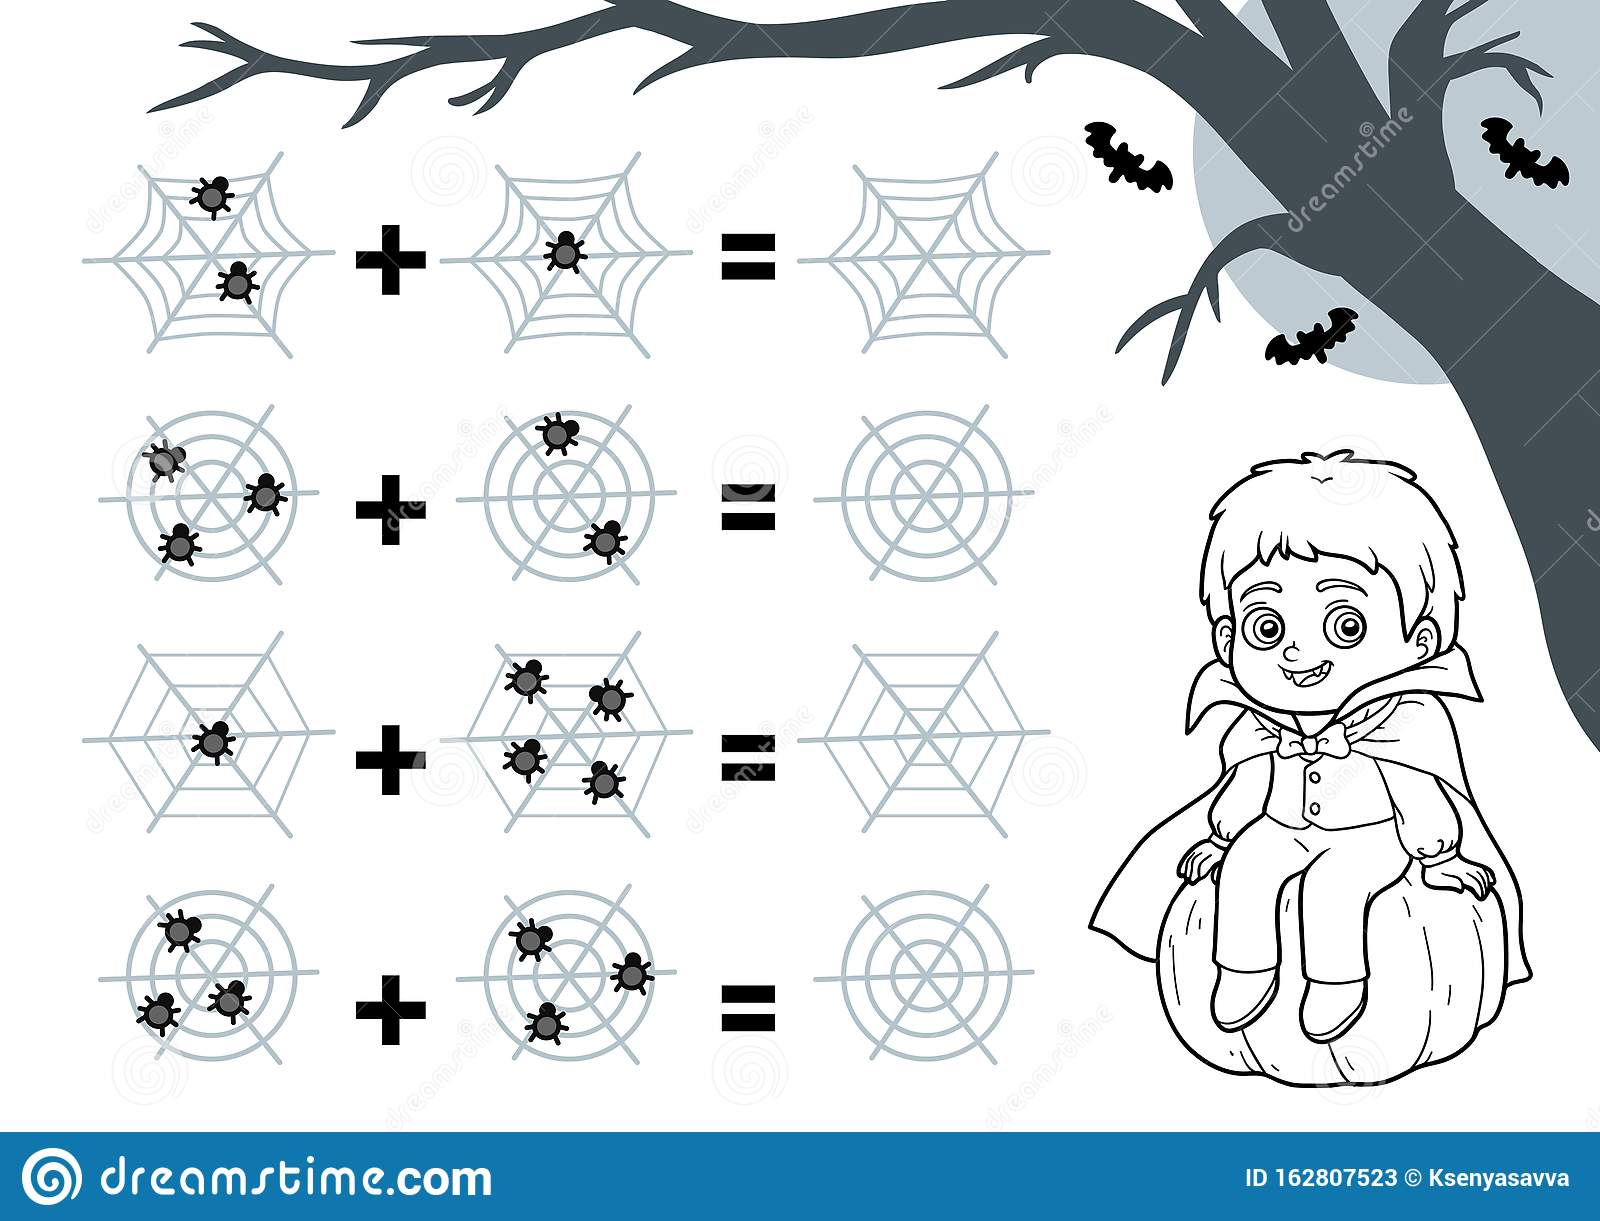 Counting Game For Preschool Children Halloween Characters